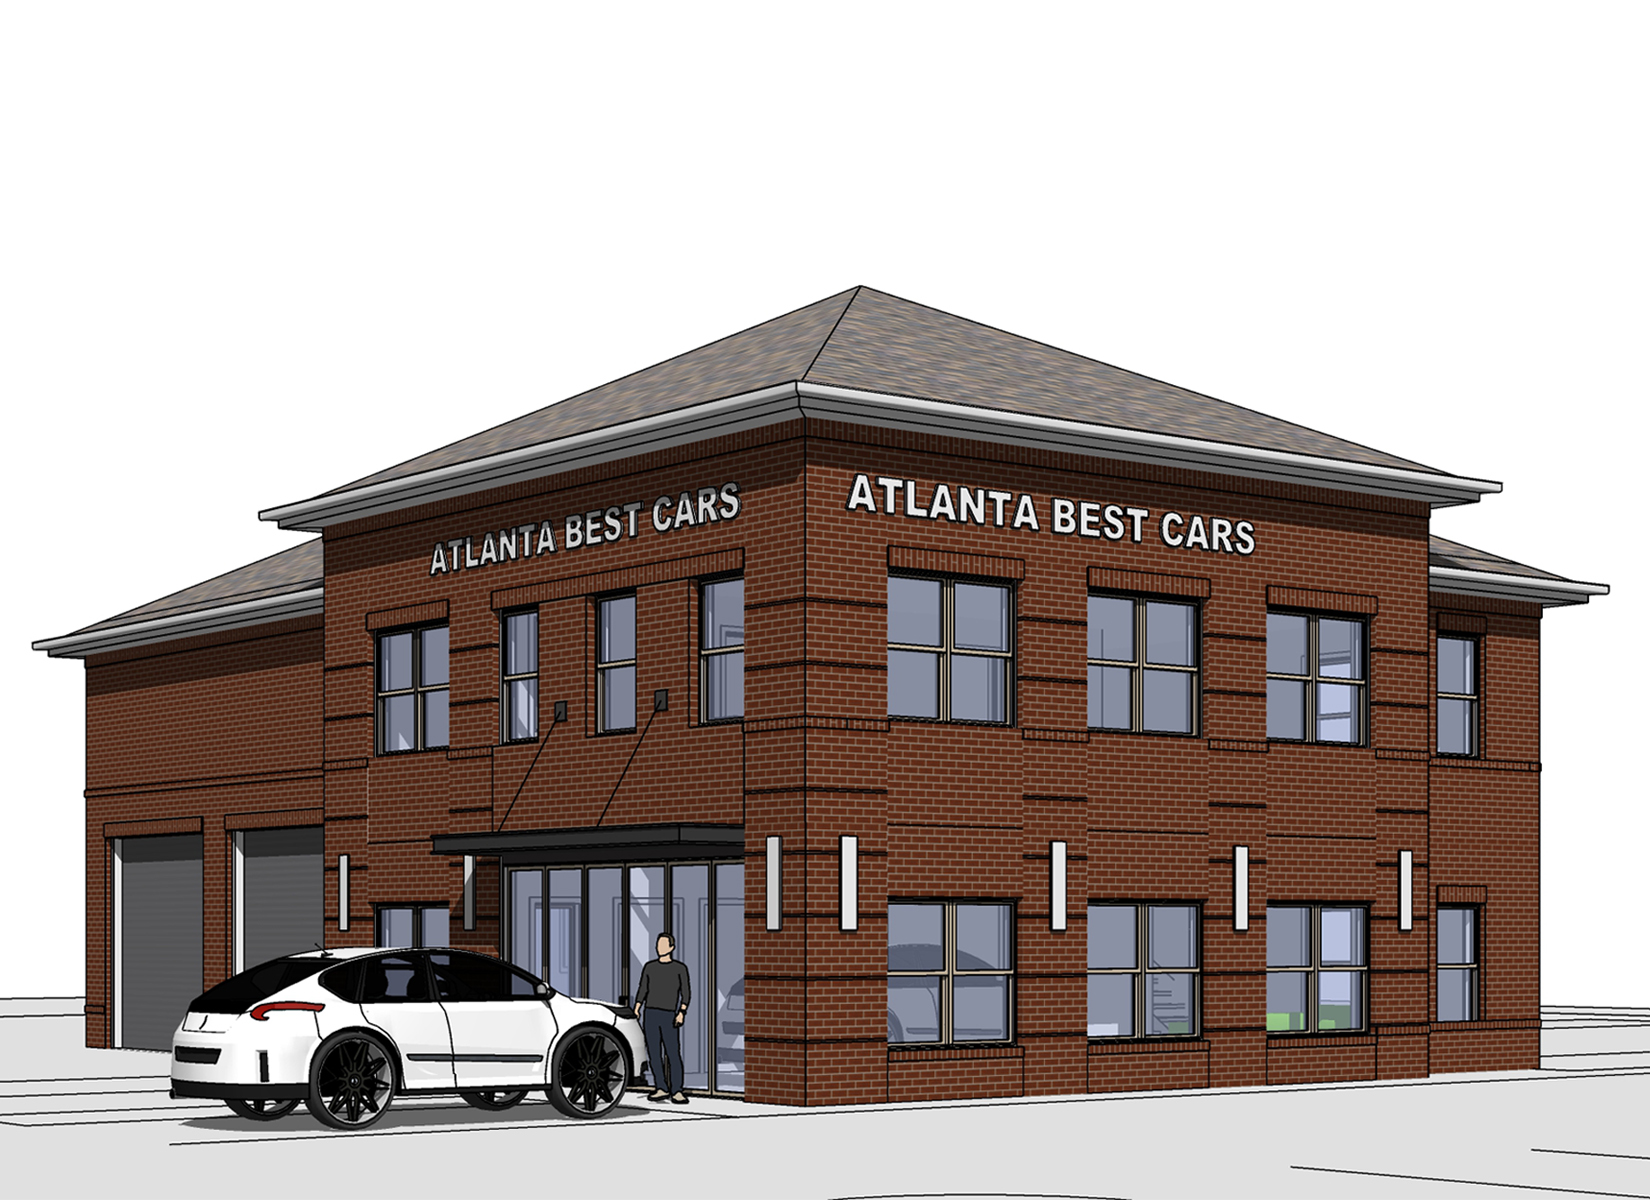 Atlanta Best Cars Perspective